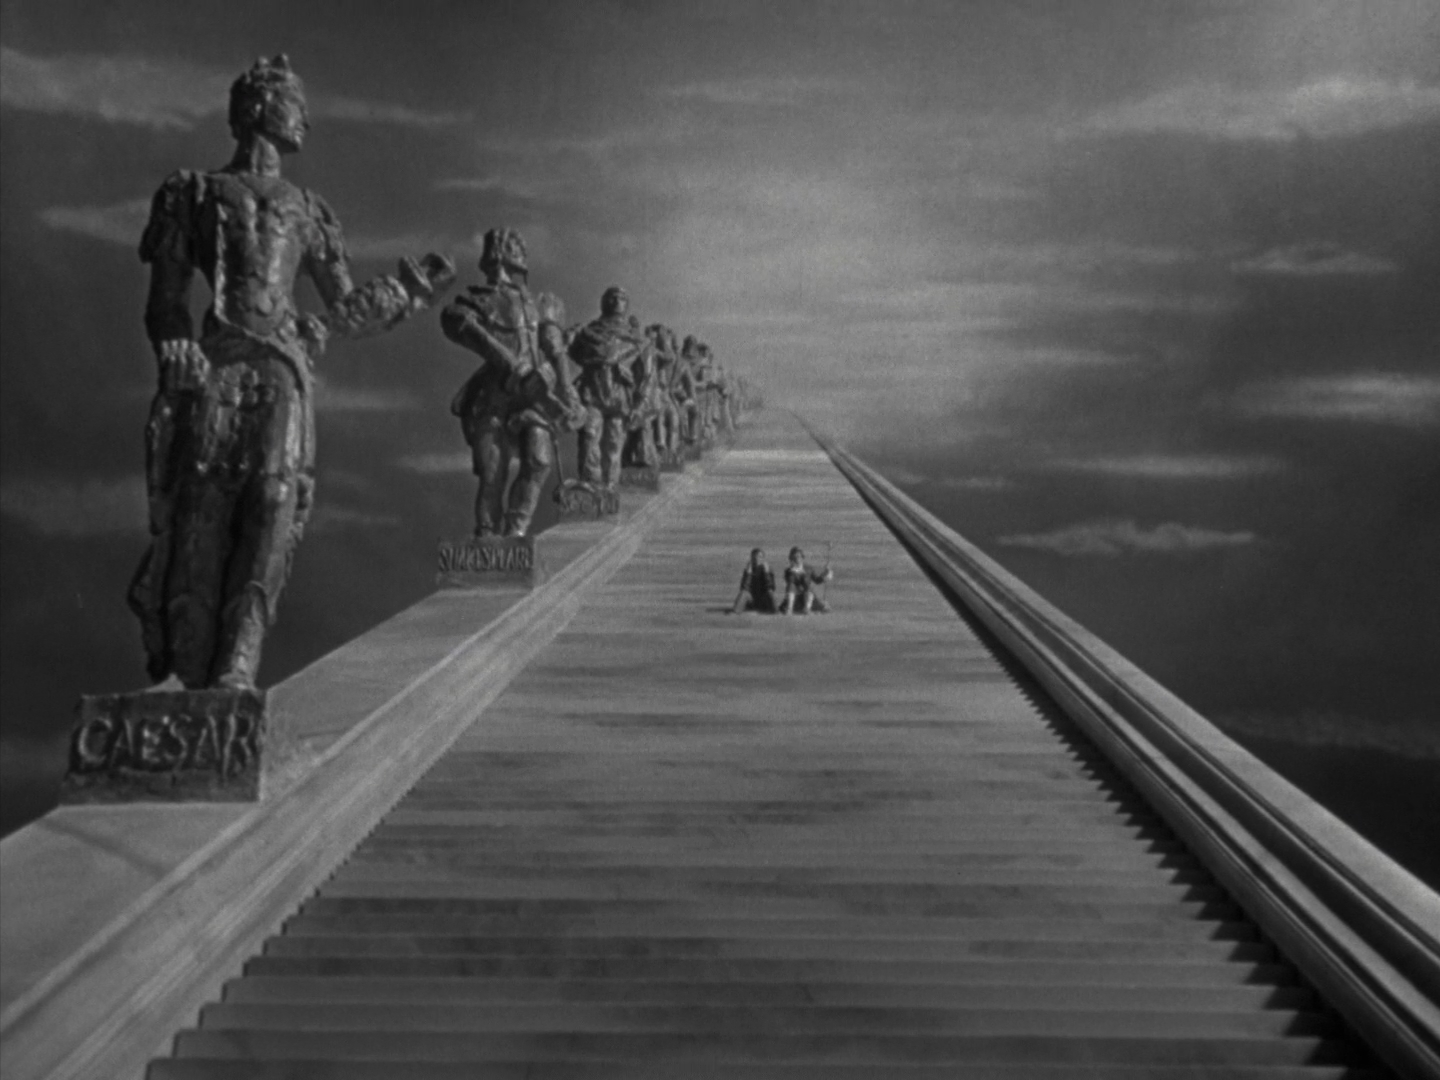 A stairway to heaven in A Matter of Life and Death (1946)